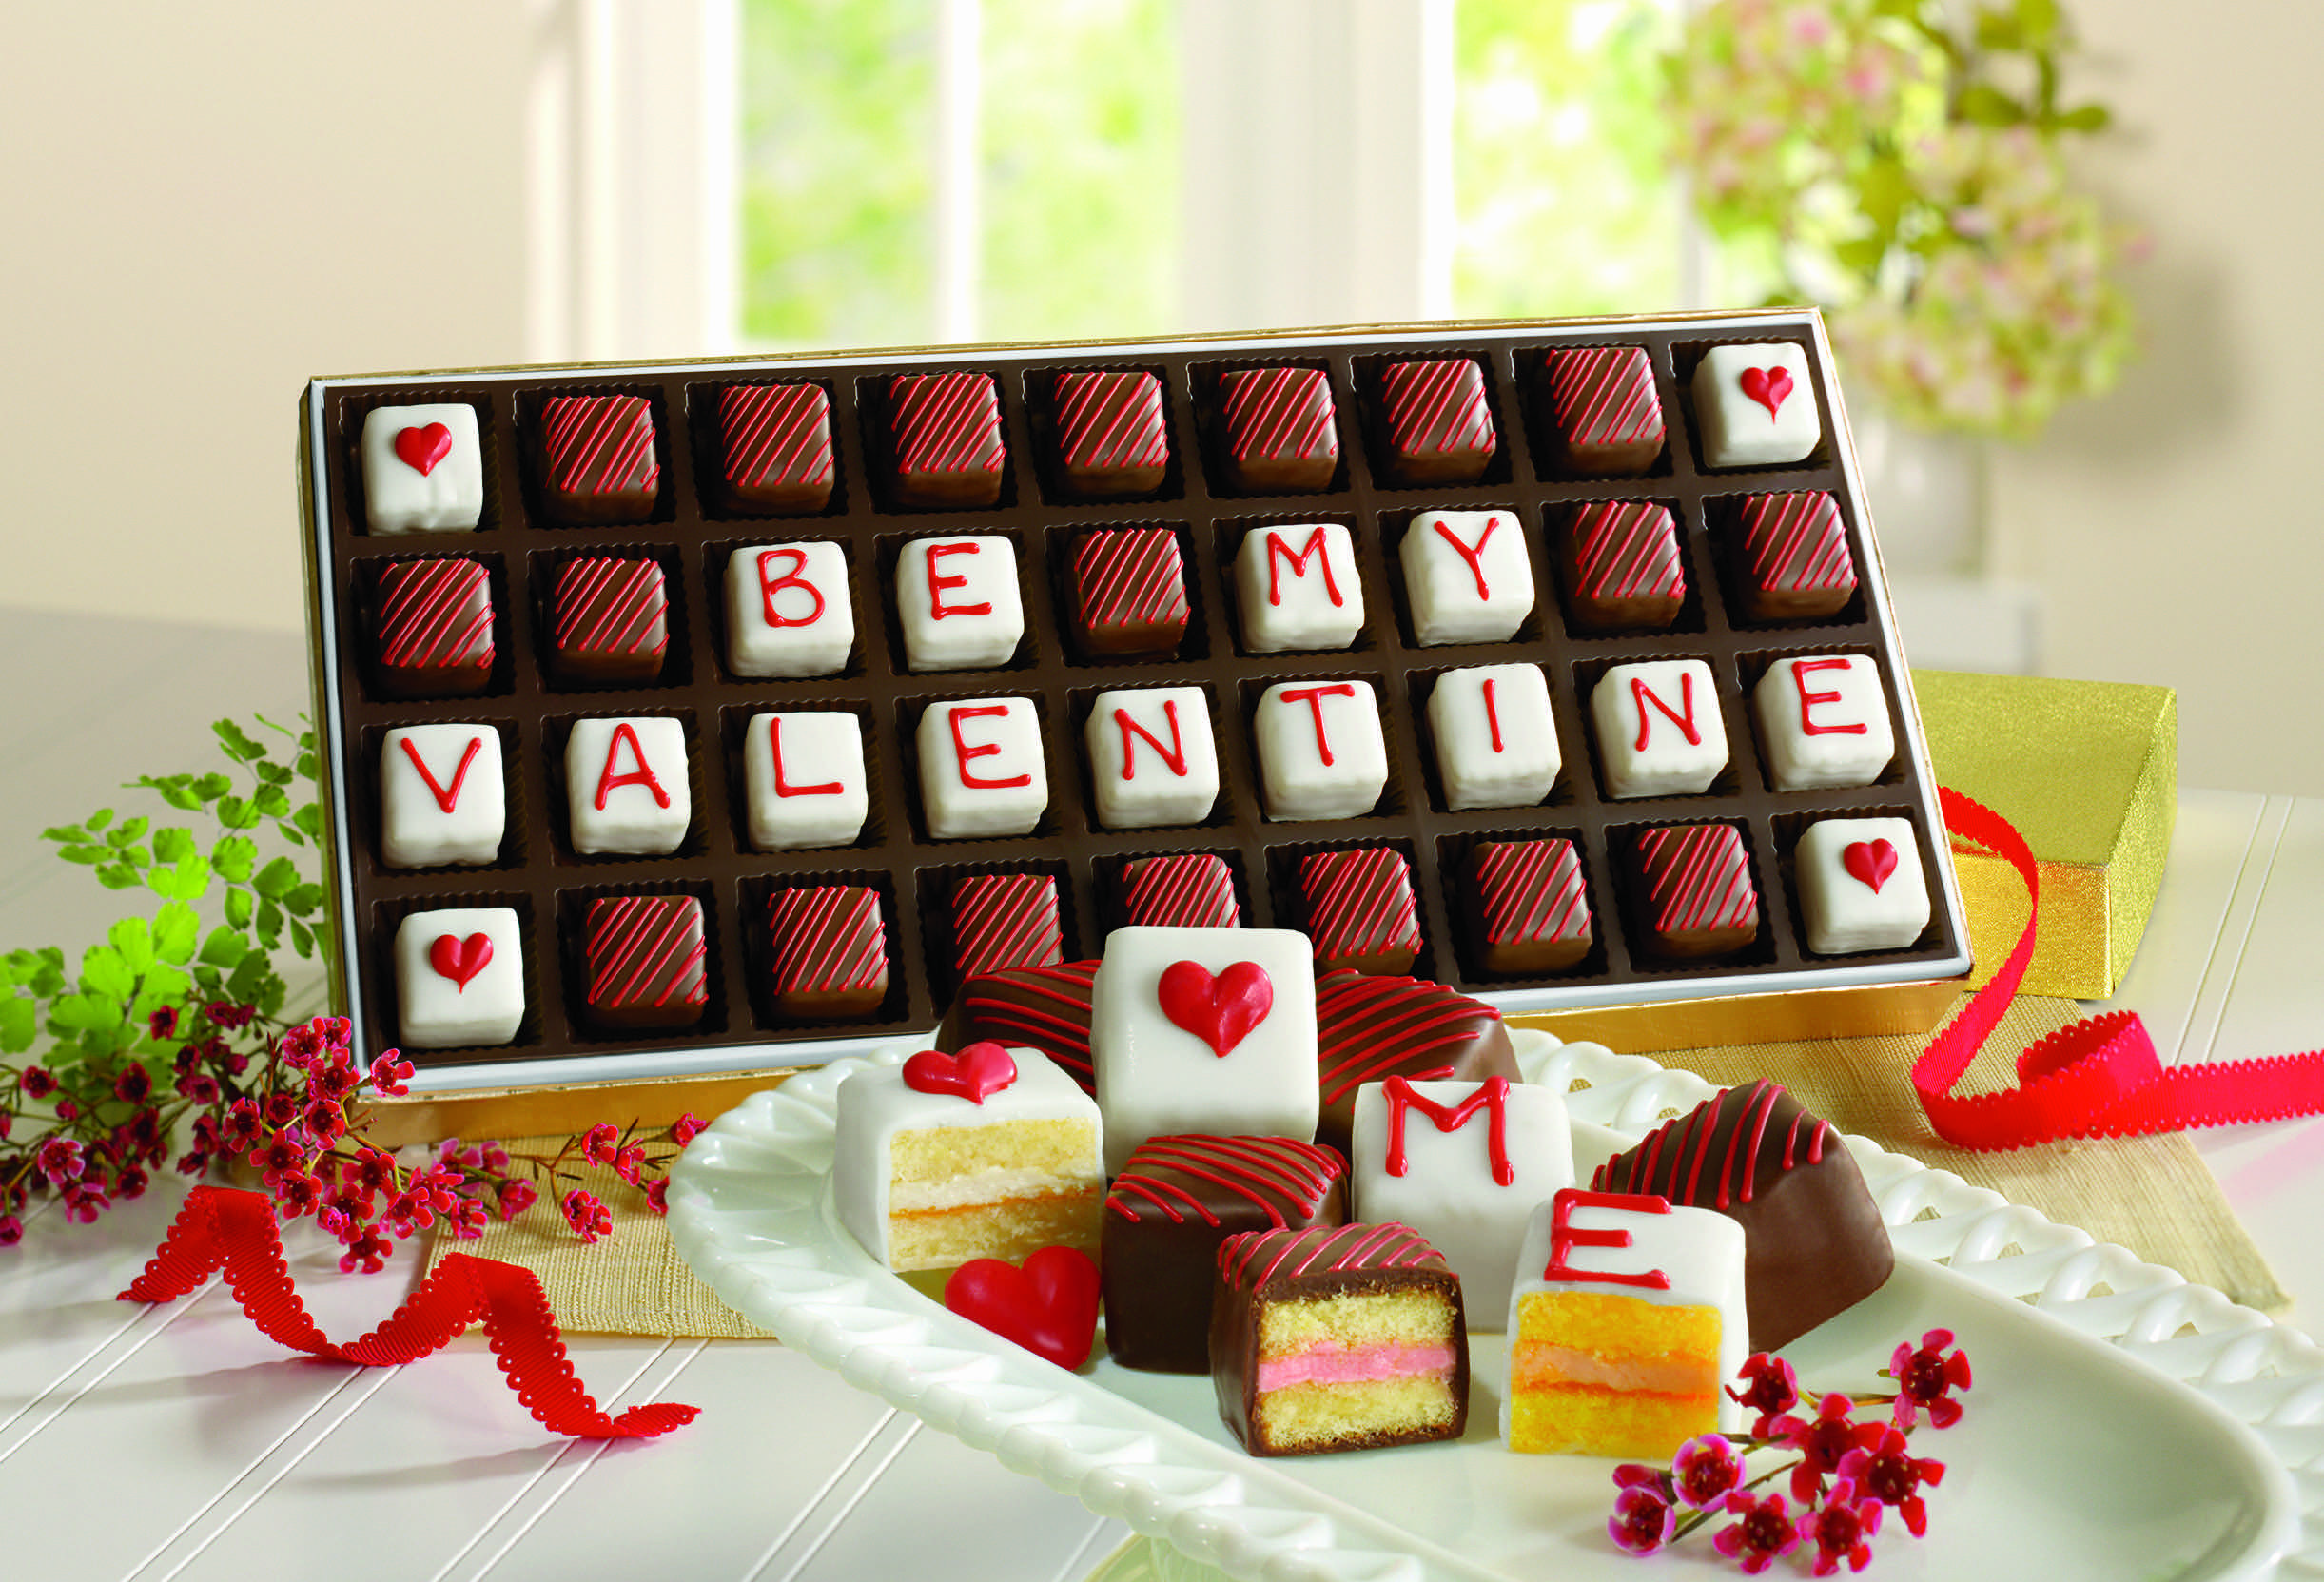 Valentines Day Chocolates And Sweets For Sweeties Are